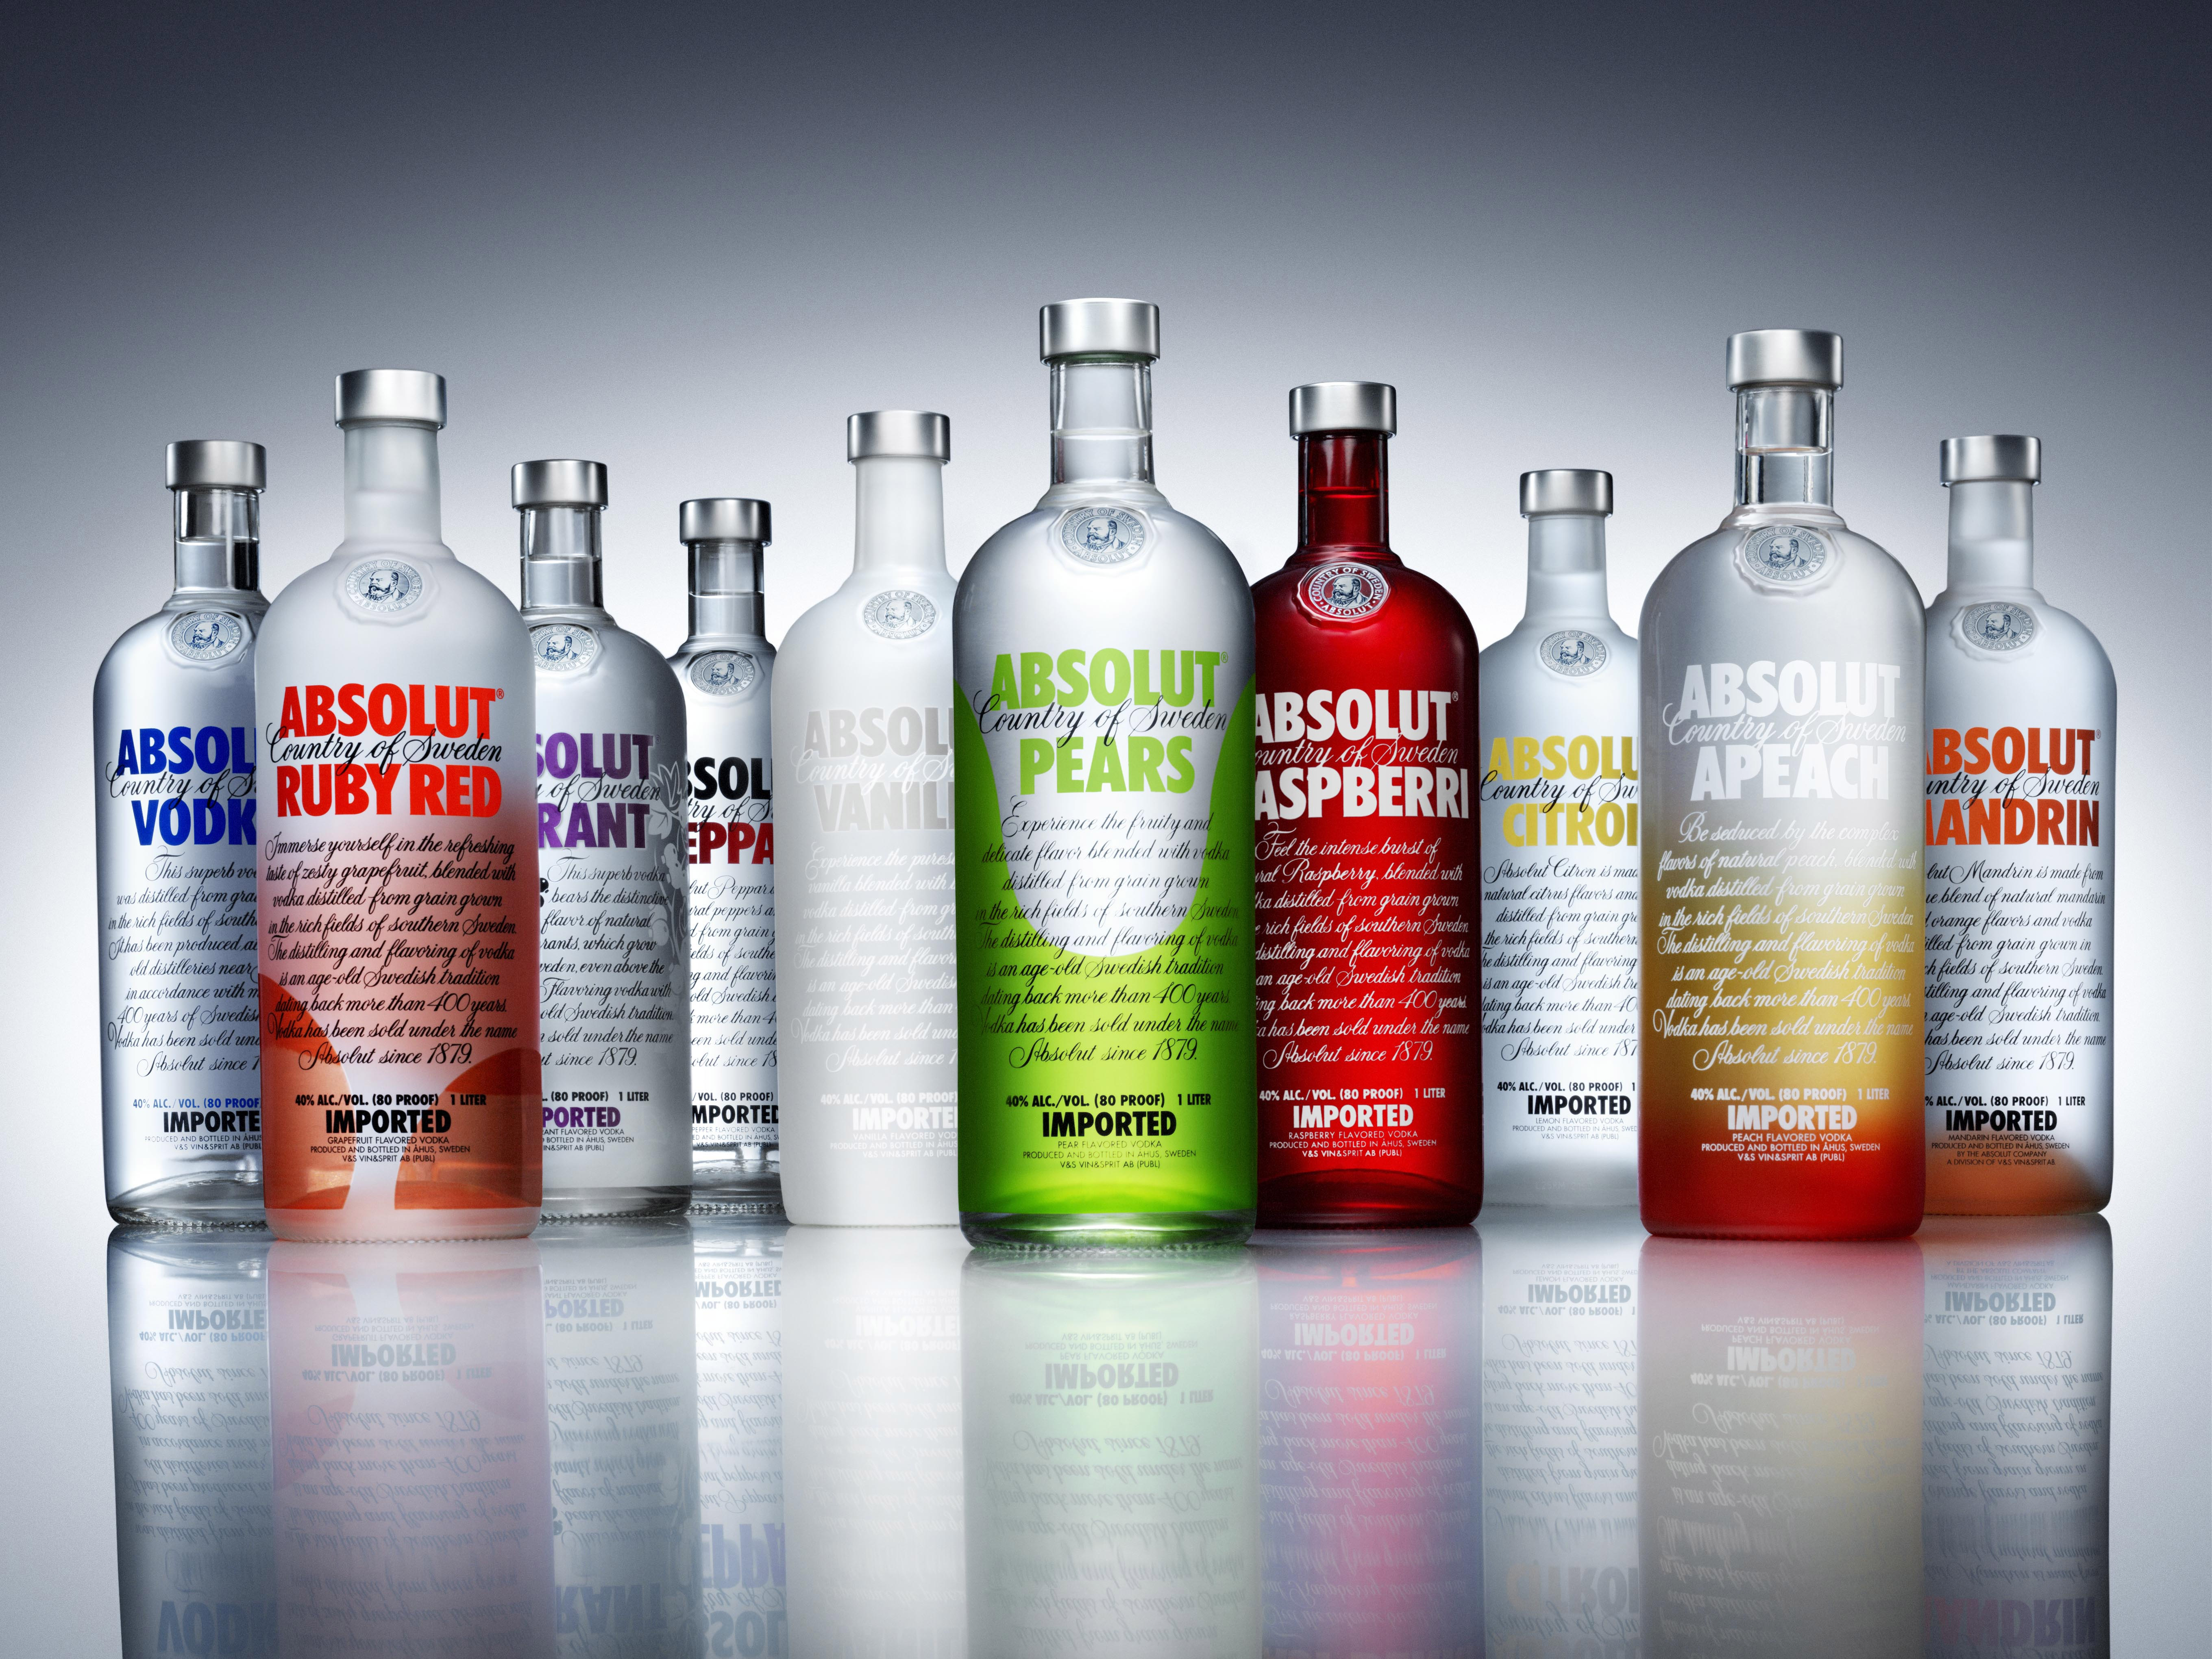 https://i2.wp.com/www.absolutads.com/mix/absolut_vodka_family.jpg